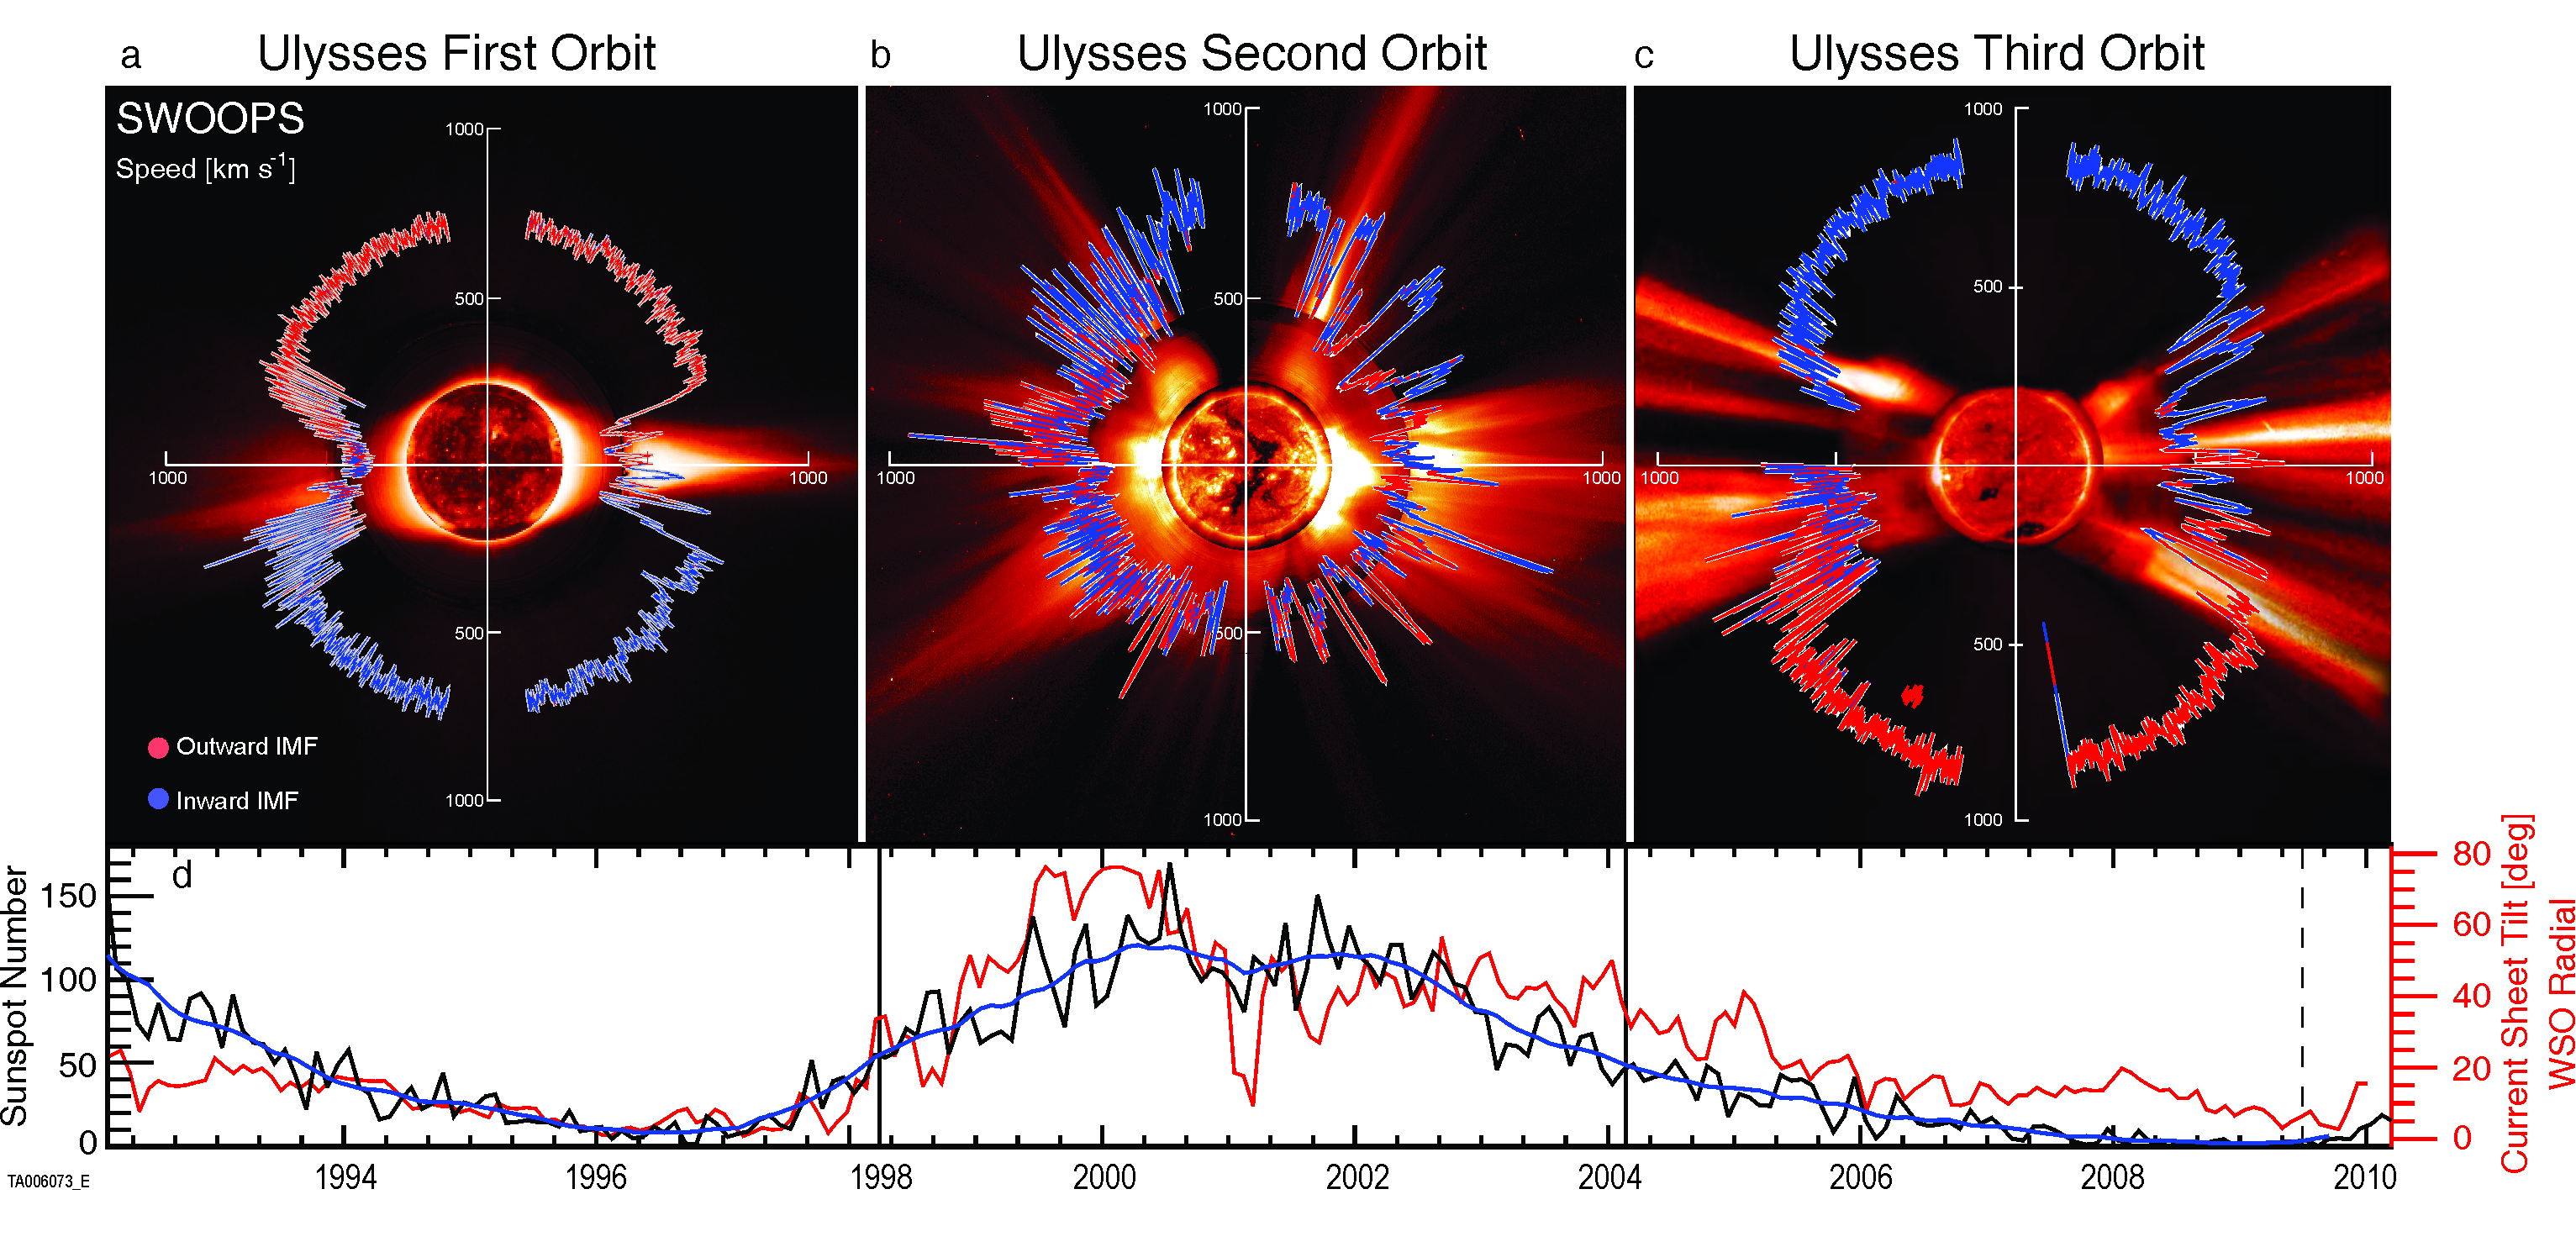 Ulysses spacecraft solar windspeed measurements ovcerlaid with sunspot numbers